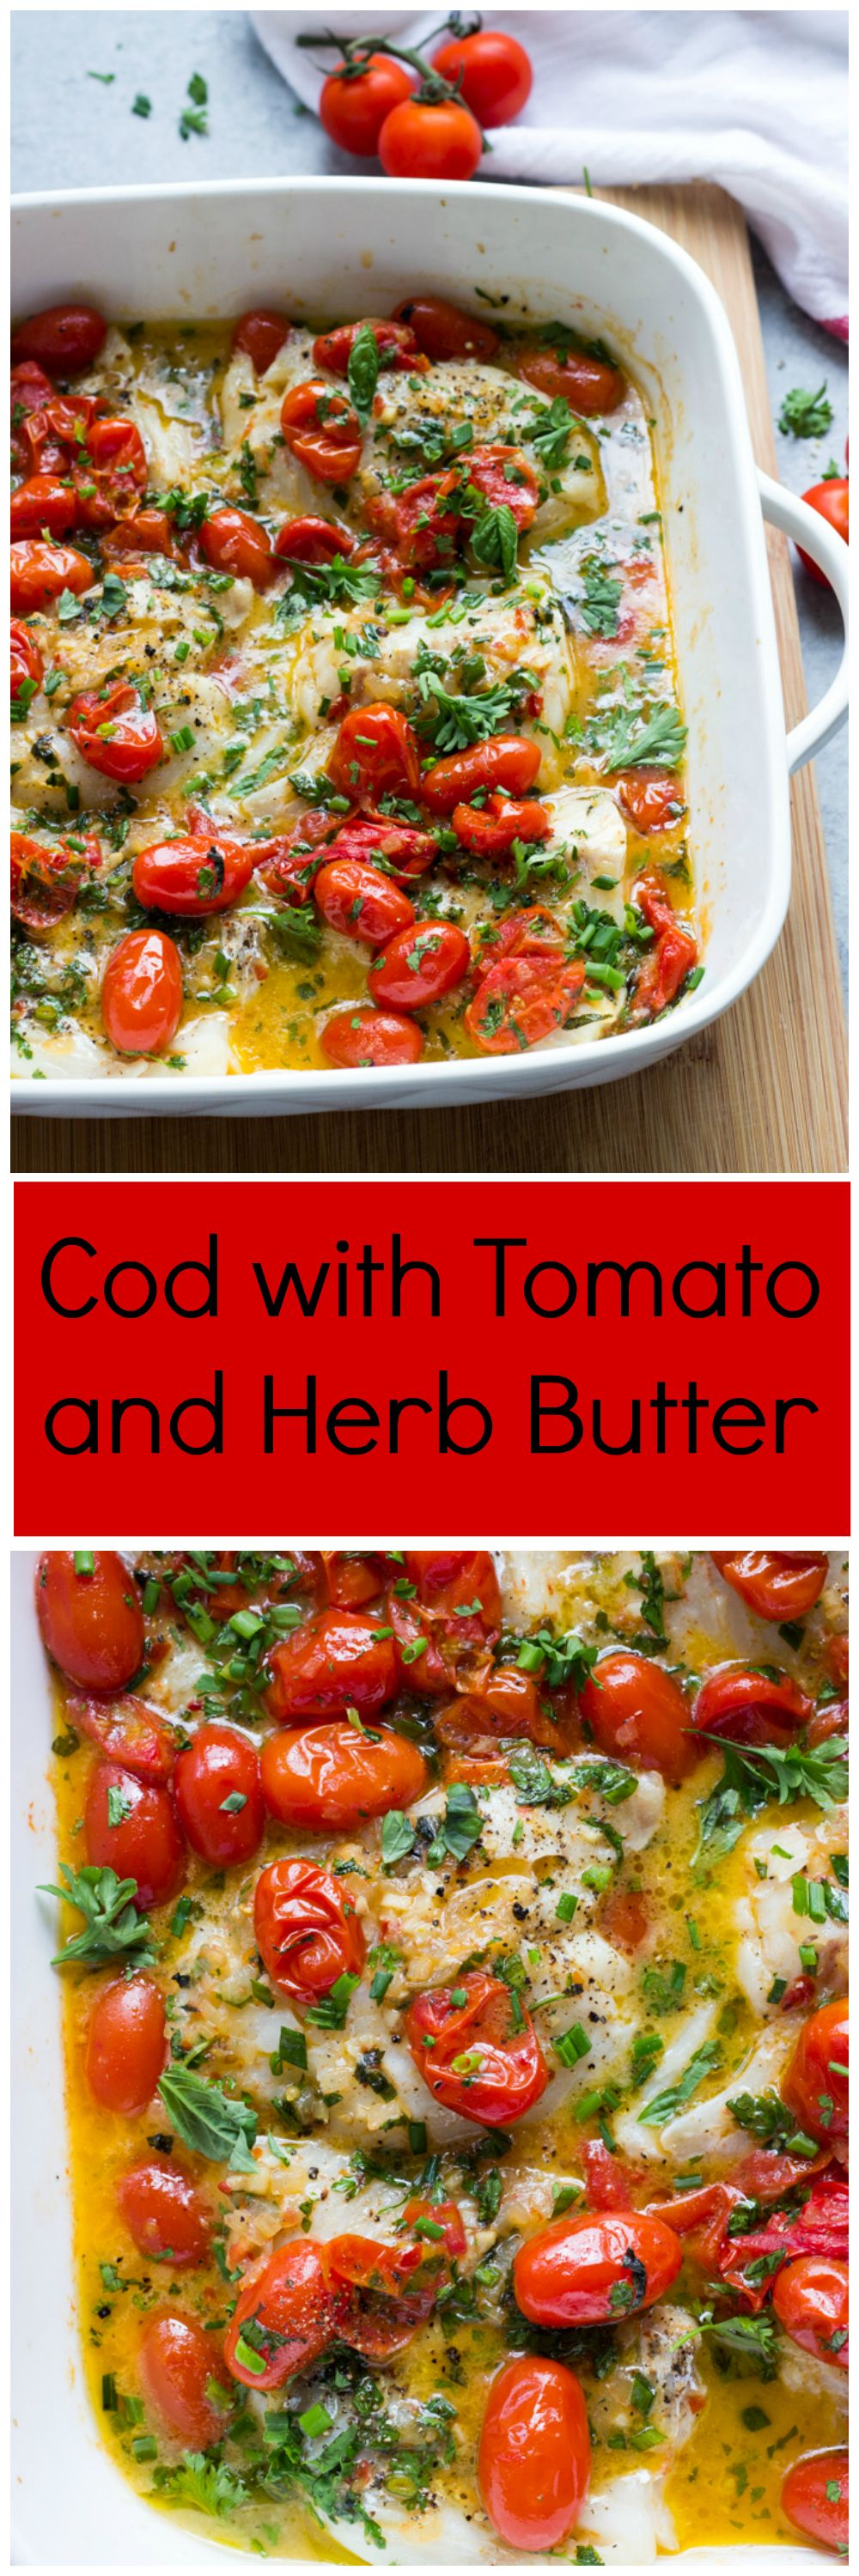 Cod With Tomato And Herb Butter 5 Star Recipe Little Broken Recipe Fish Recipes Healthy Recipes Cod Recipes